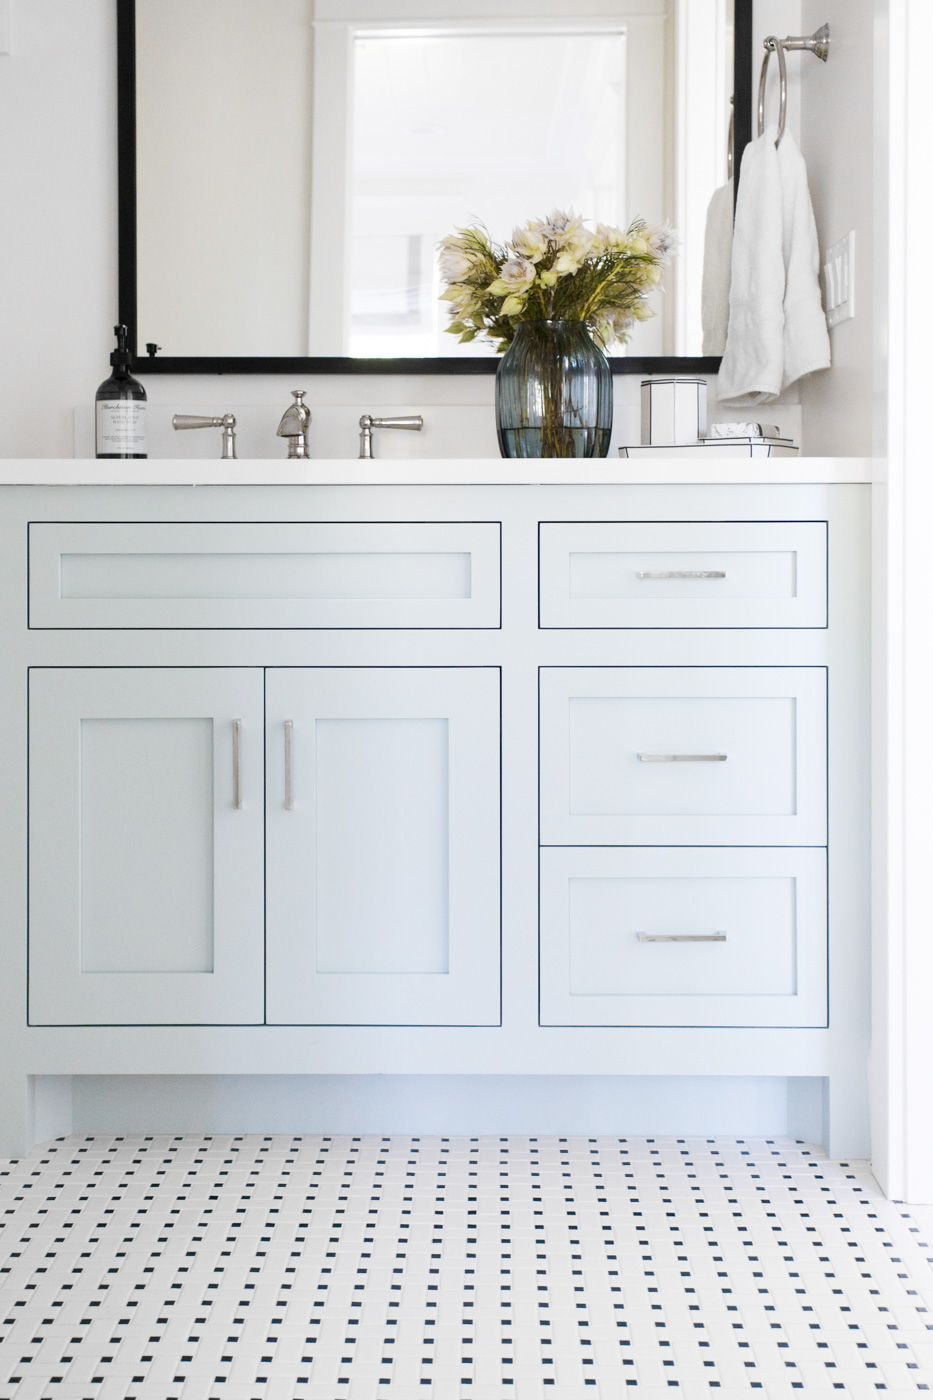 Black And White Tile With Benjamin Moore Woodlawn Blue Cabinets